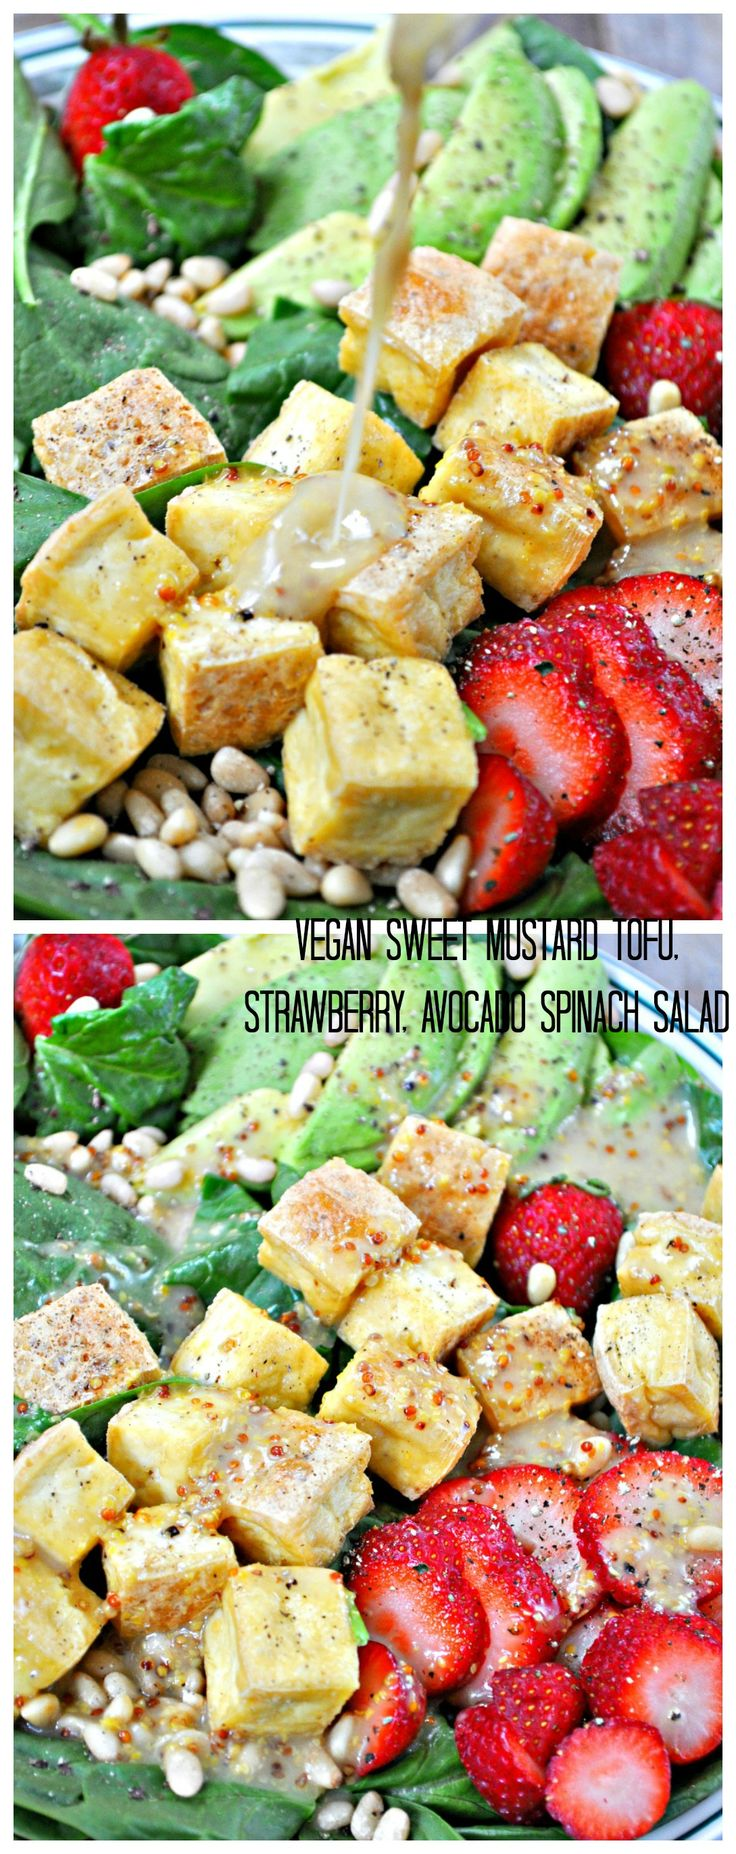 Vegan Sweet Mustard Tofu, Strawberry, Avocado Salad